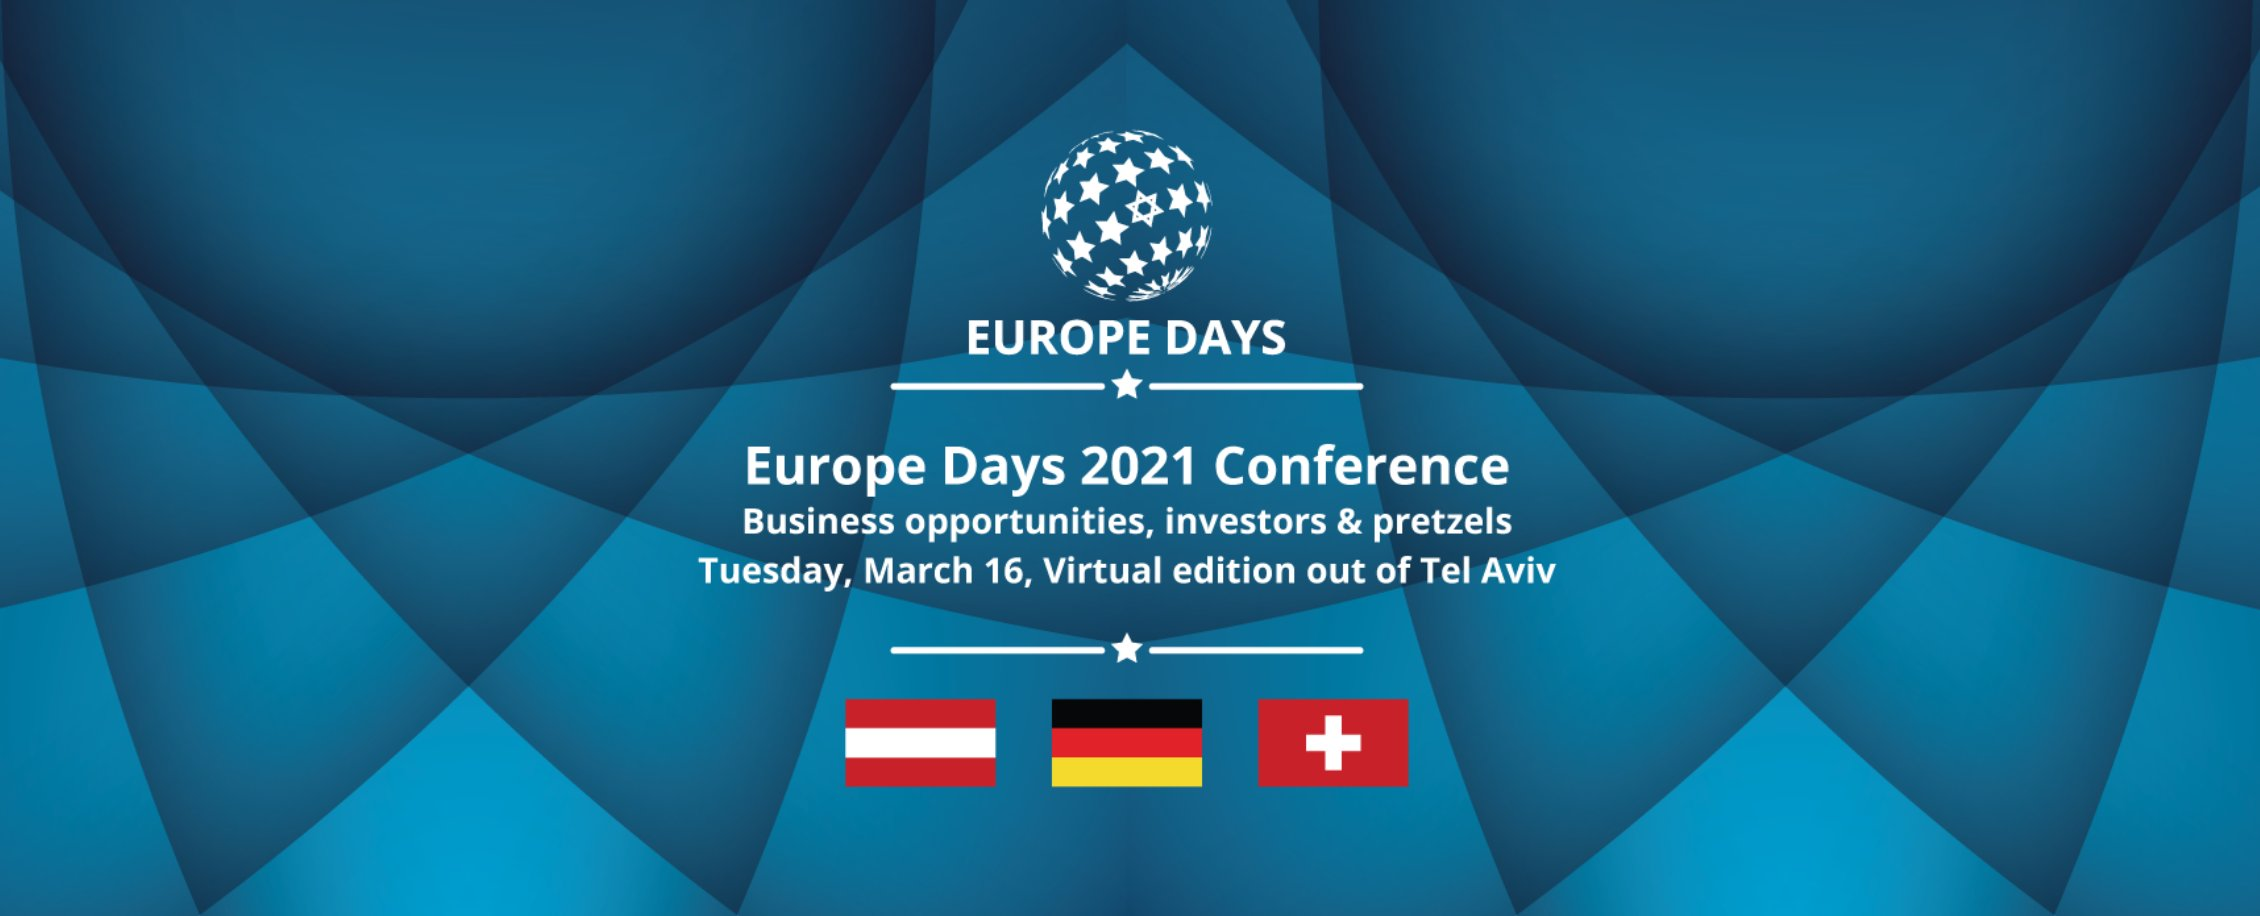 Europe Days 2021 Conference